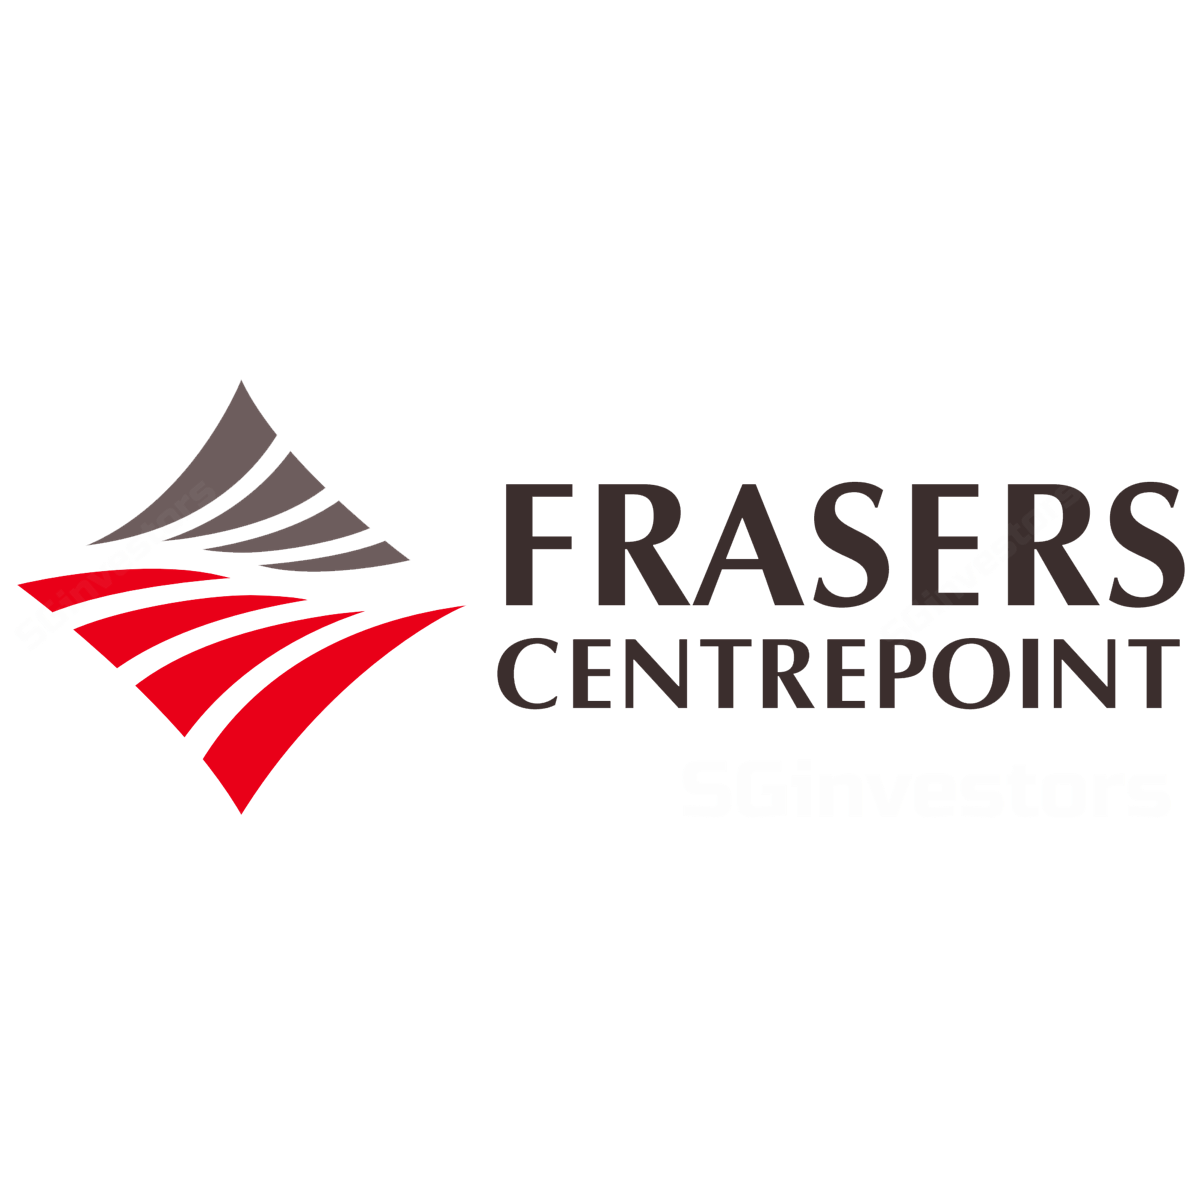 Frasers Centrepoint Ltd - CIMB Research 2017-08-08: 3QFY9/17 Boosted By Australia